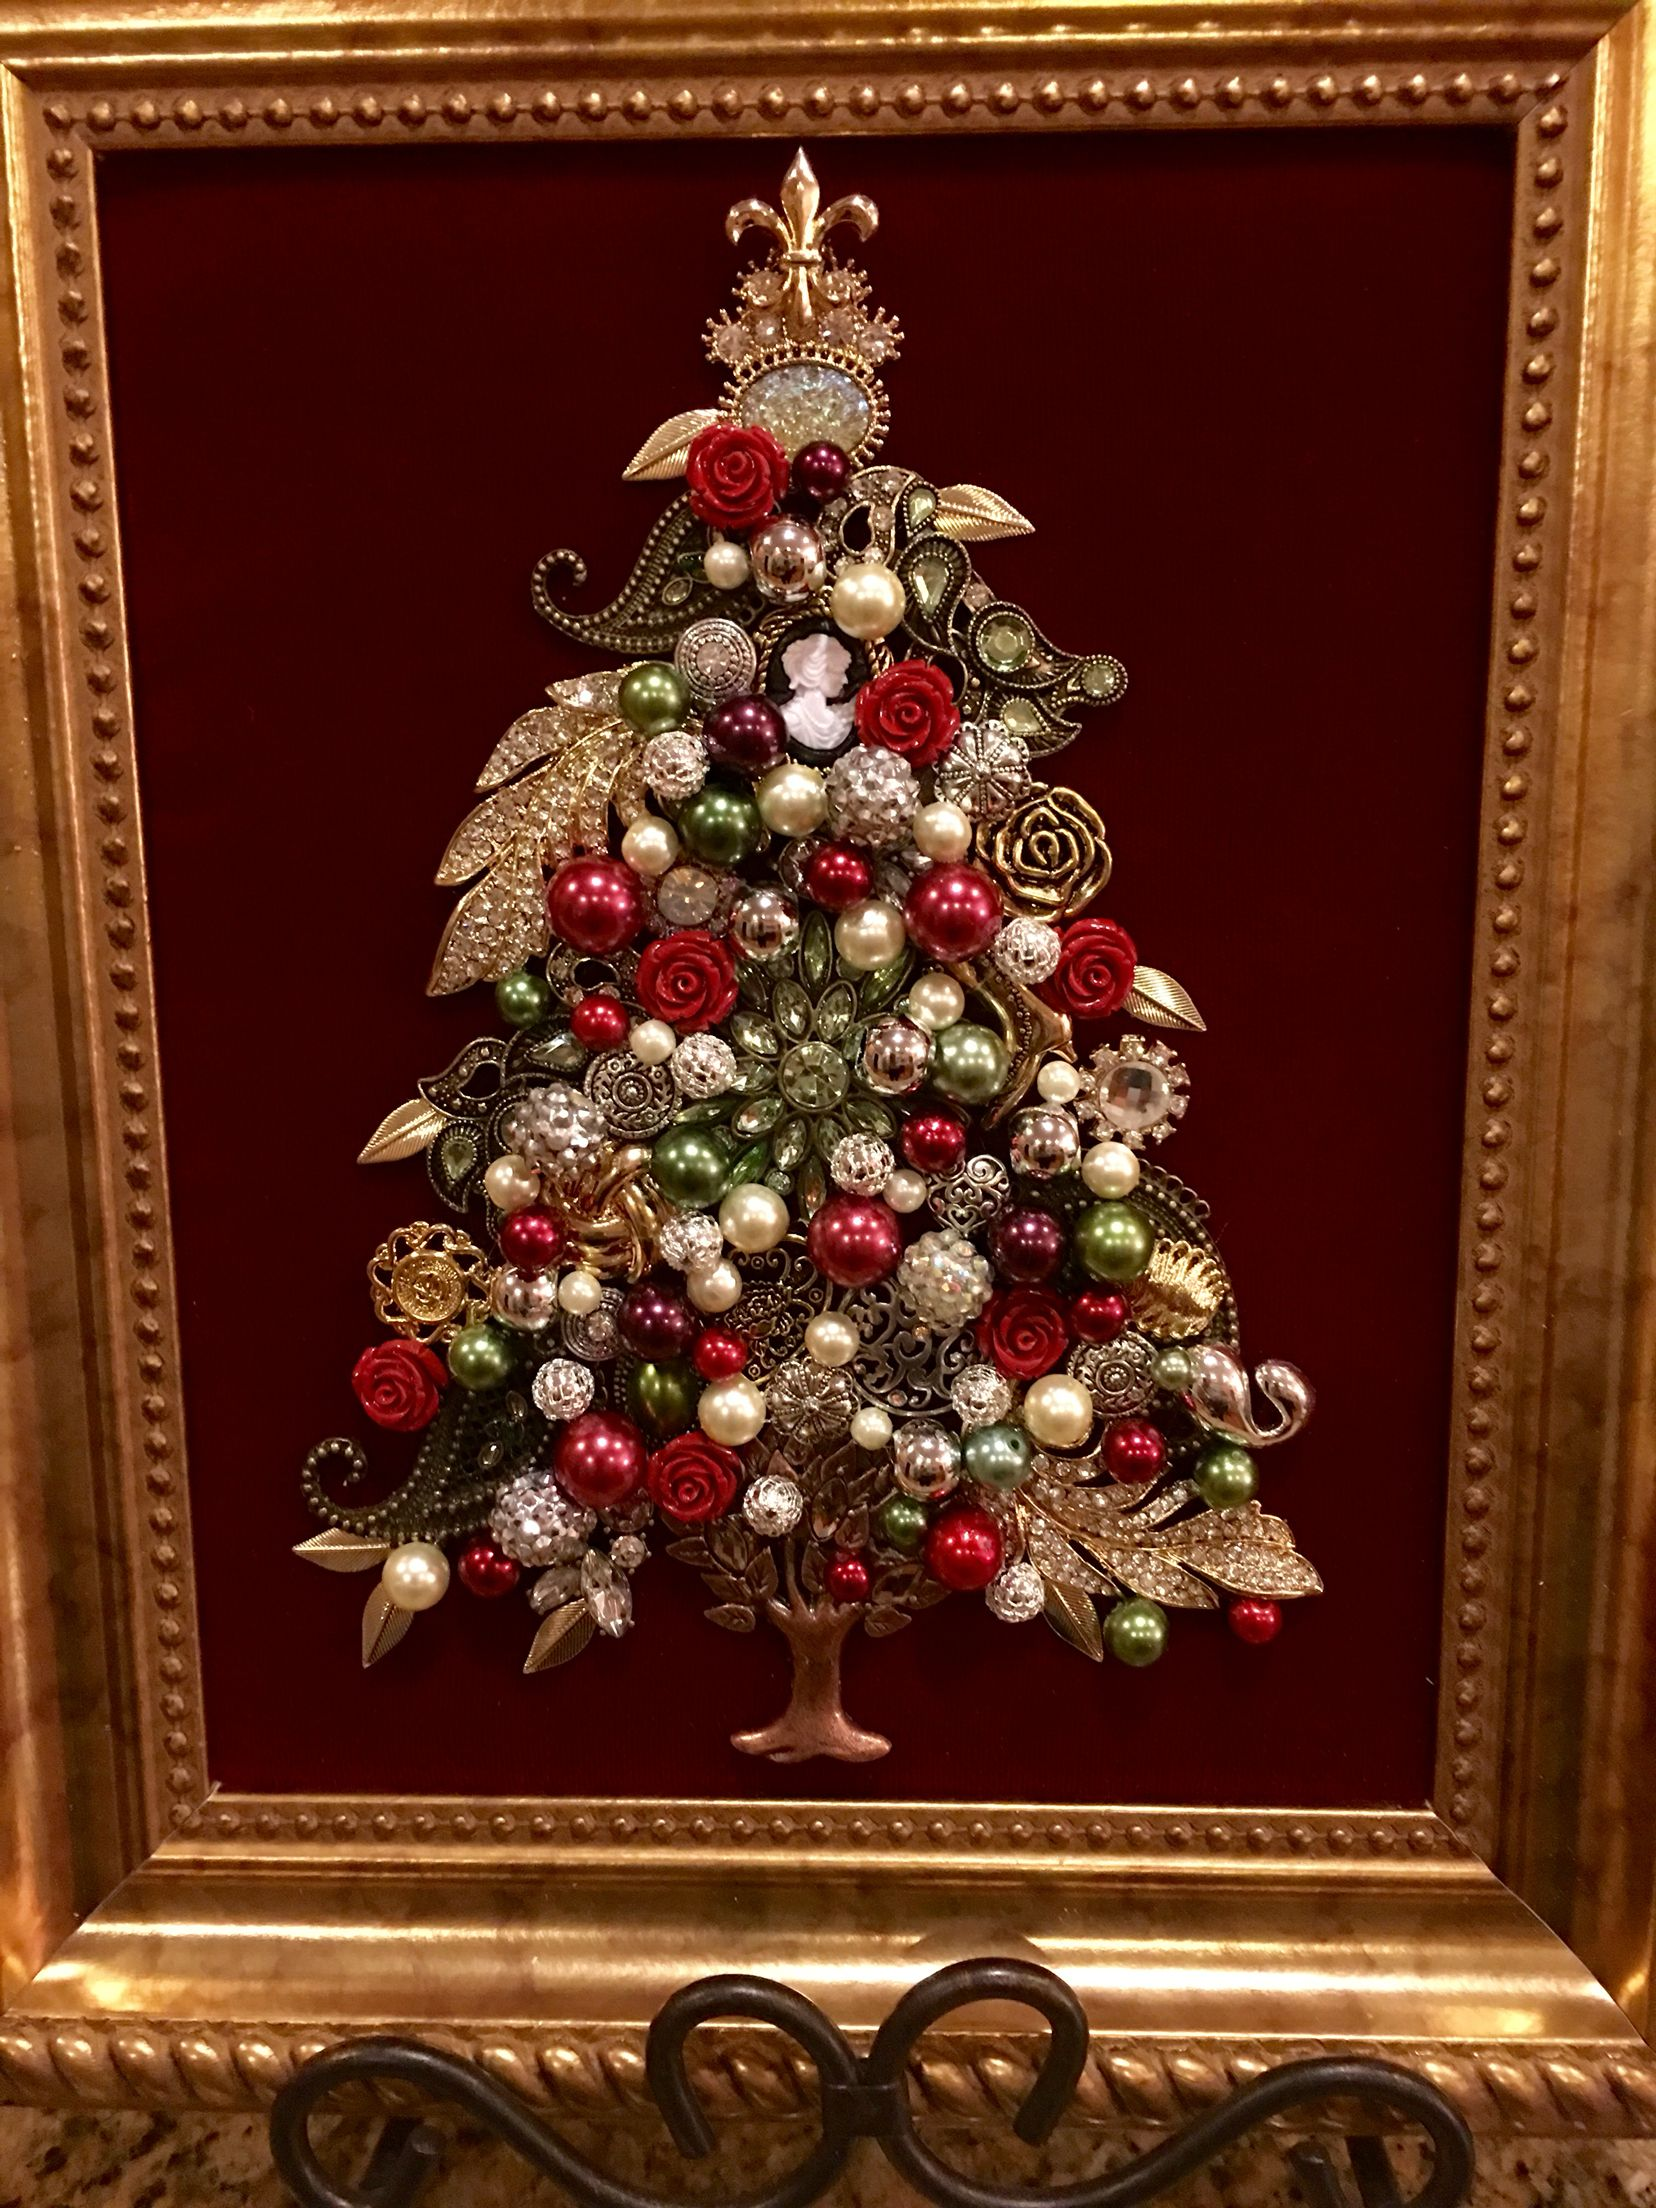 8x10 Jewelry Christmas Tree By Beth Turchi 2016 Vintage